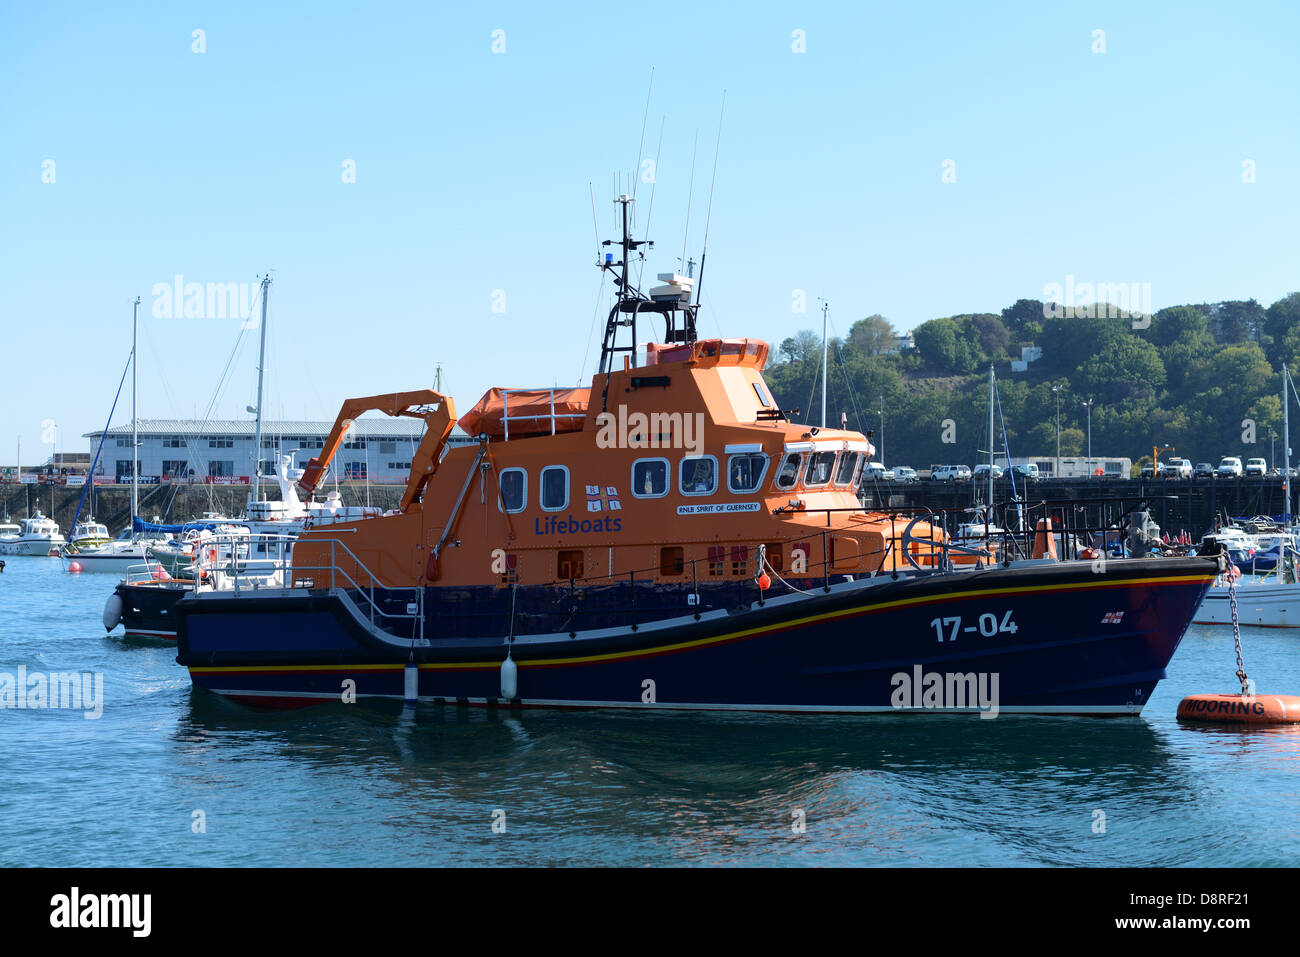 Guernsey lifeboat in St Peter Port harbour, Guernsey - Stock Image